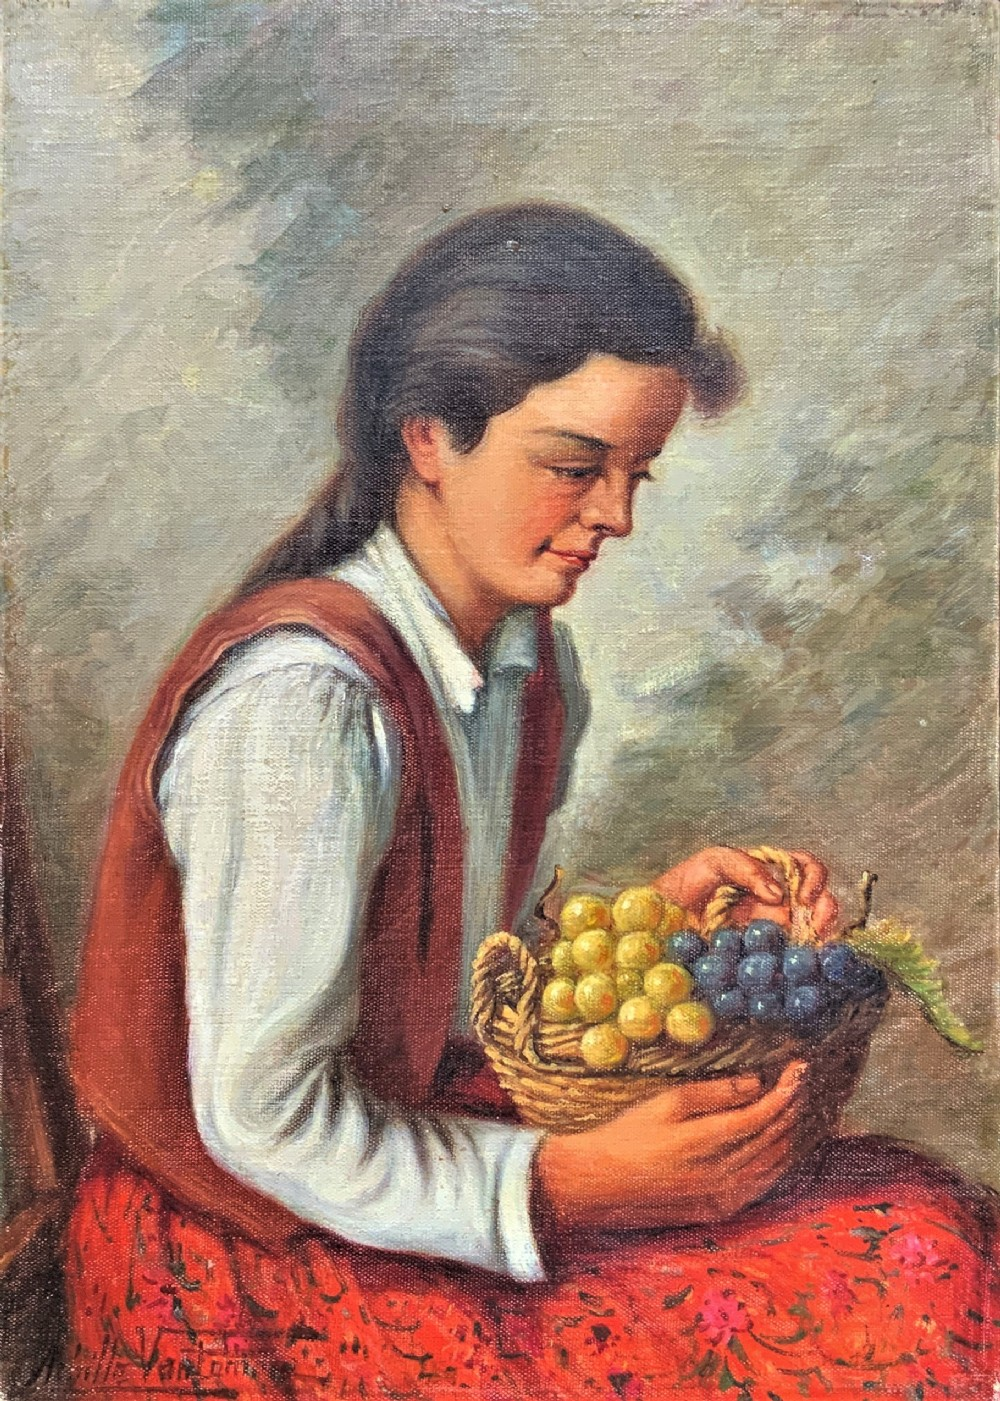 'the fruit seller' attractive original early 1900s italian oil portrait painting